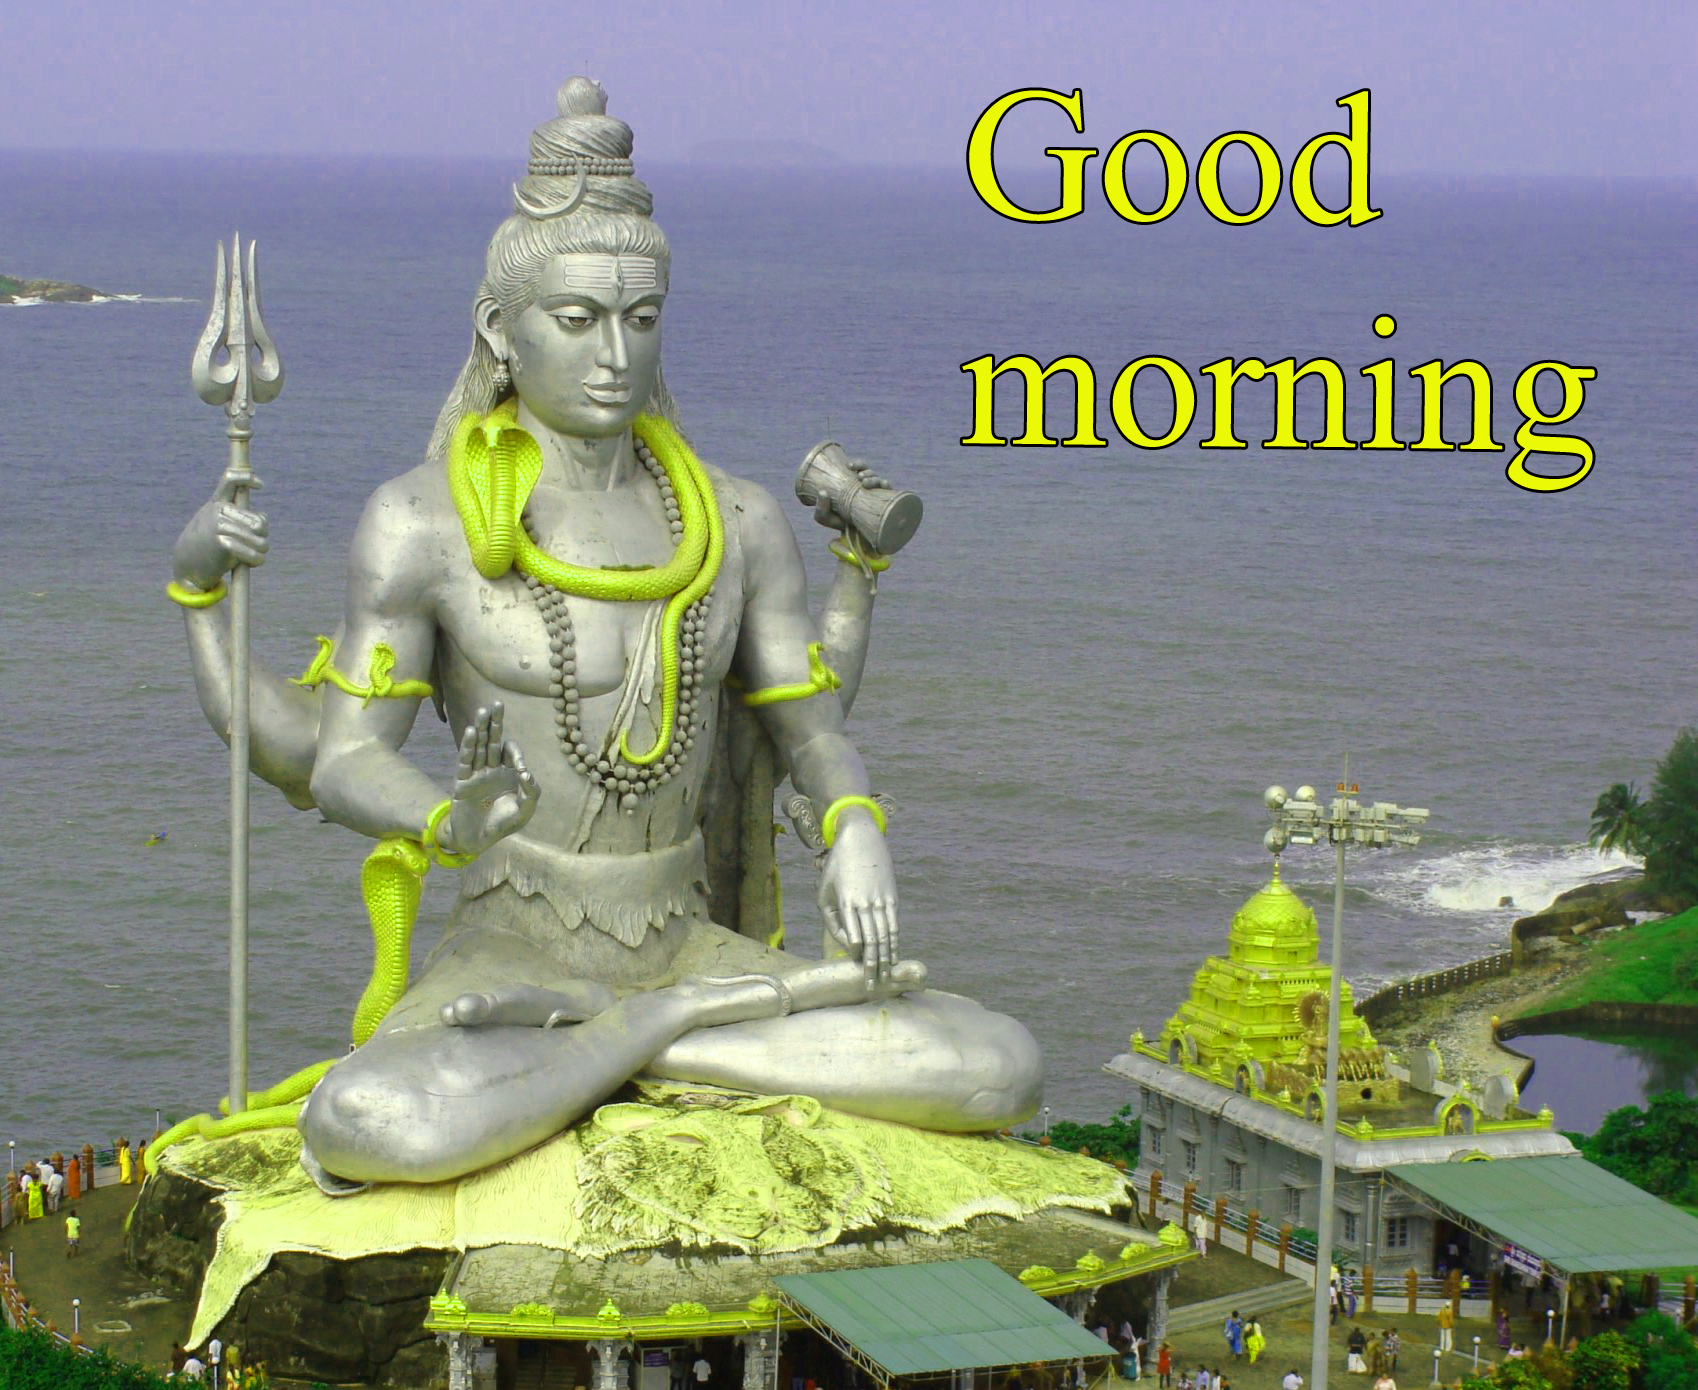 LORD SHIVA GOOD MORNING WISHES IMAGES PICS WALLPAPER HD